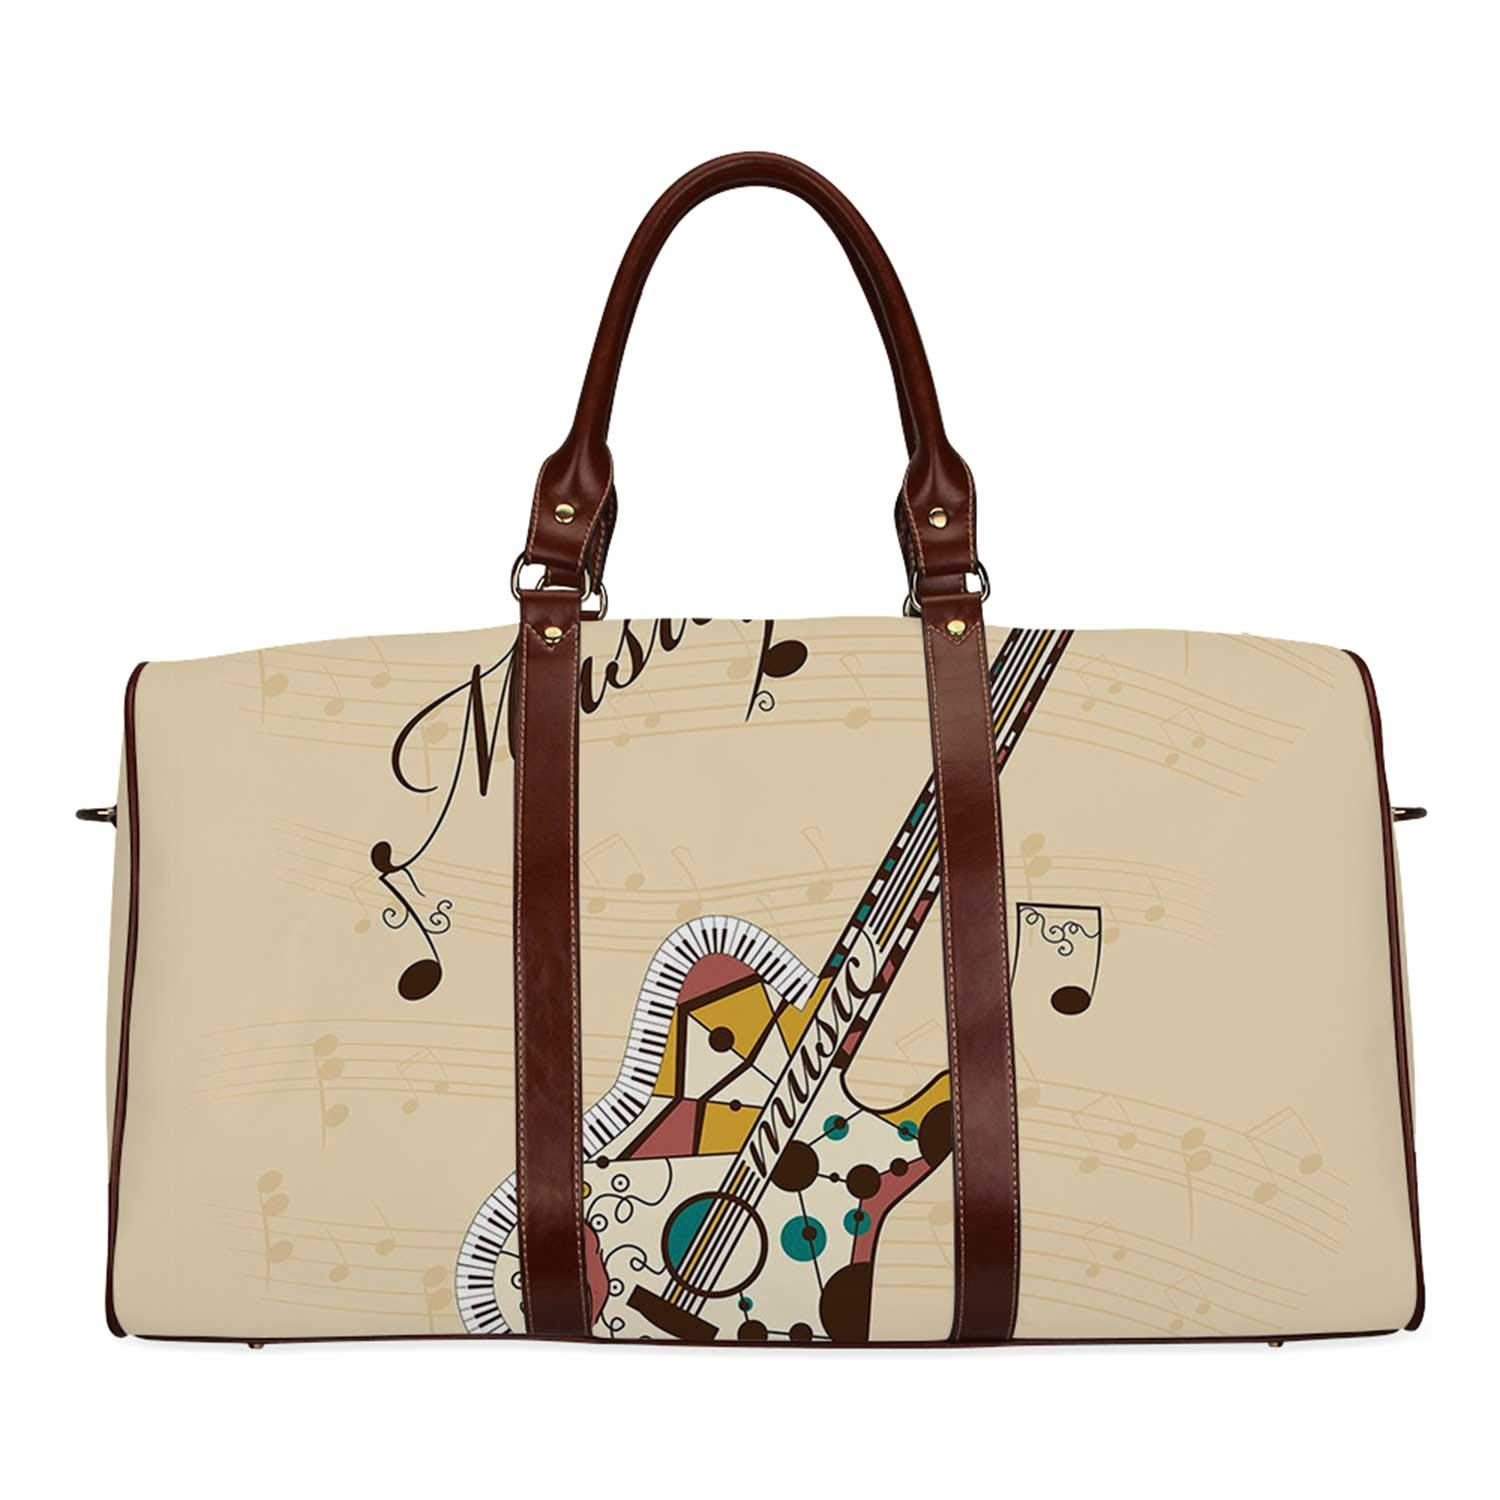 Guitar Economic Travel Bag,Abstract Funky Guitar Instrument Melody Musical Notes and Hand Writing Decorative for Weekend,20.8''L x 12''W x 9.8''H by YOLIYANA